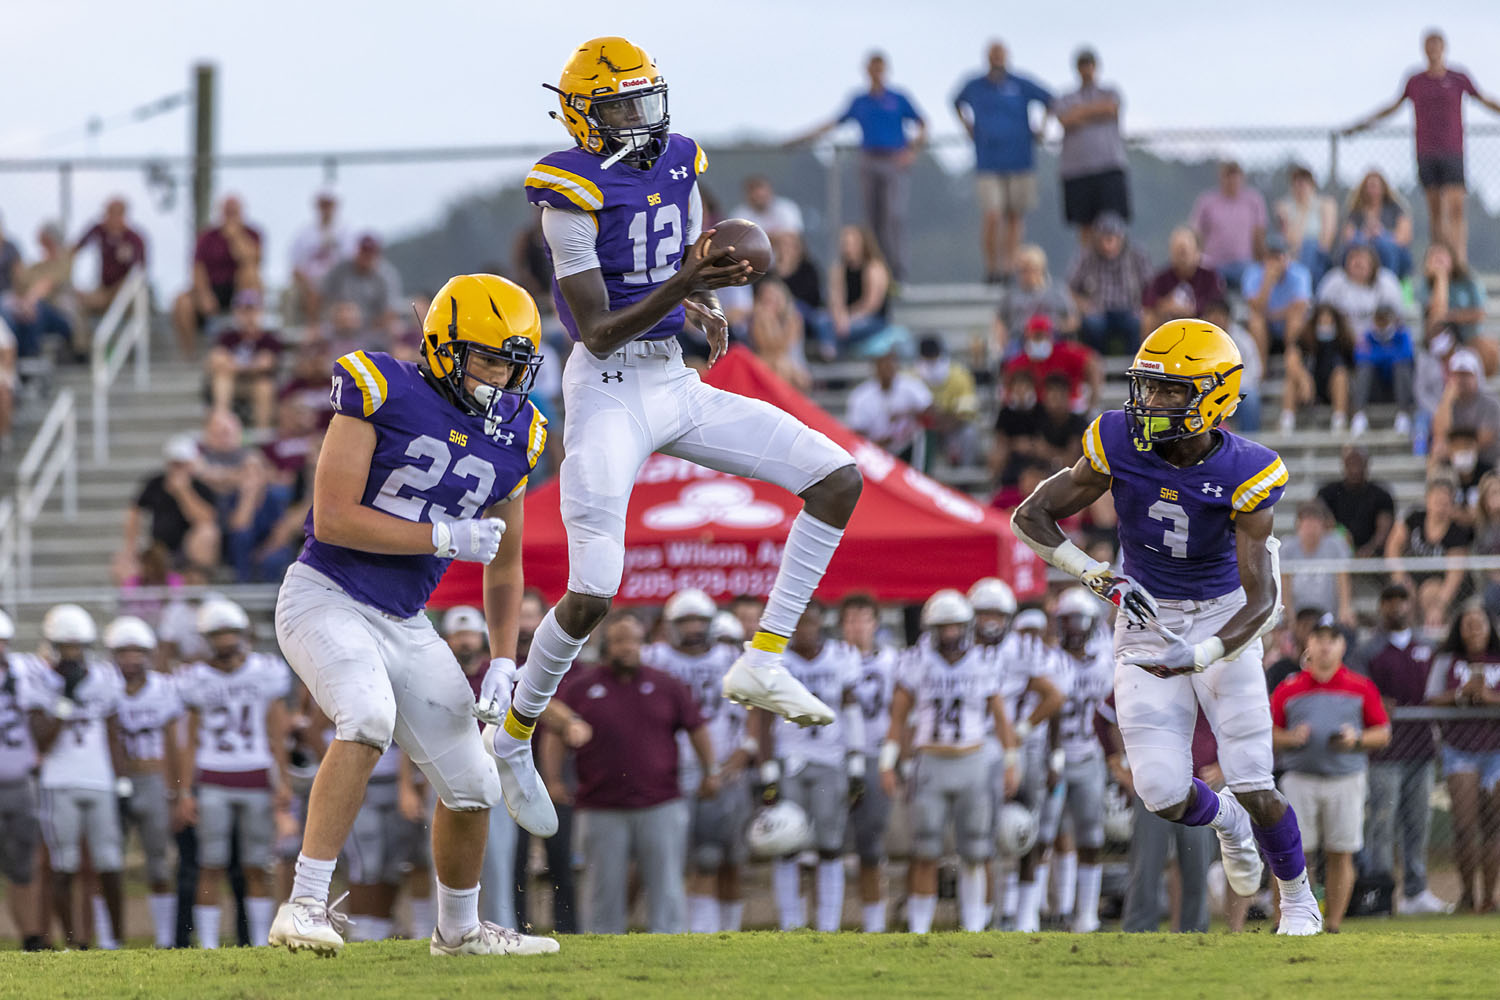 Springville wins to usher in Clements era